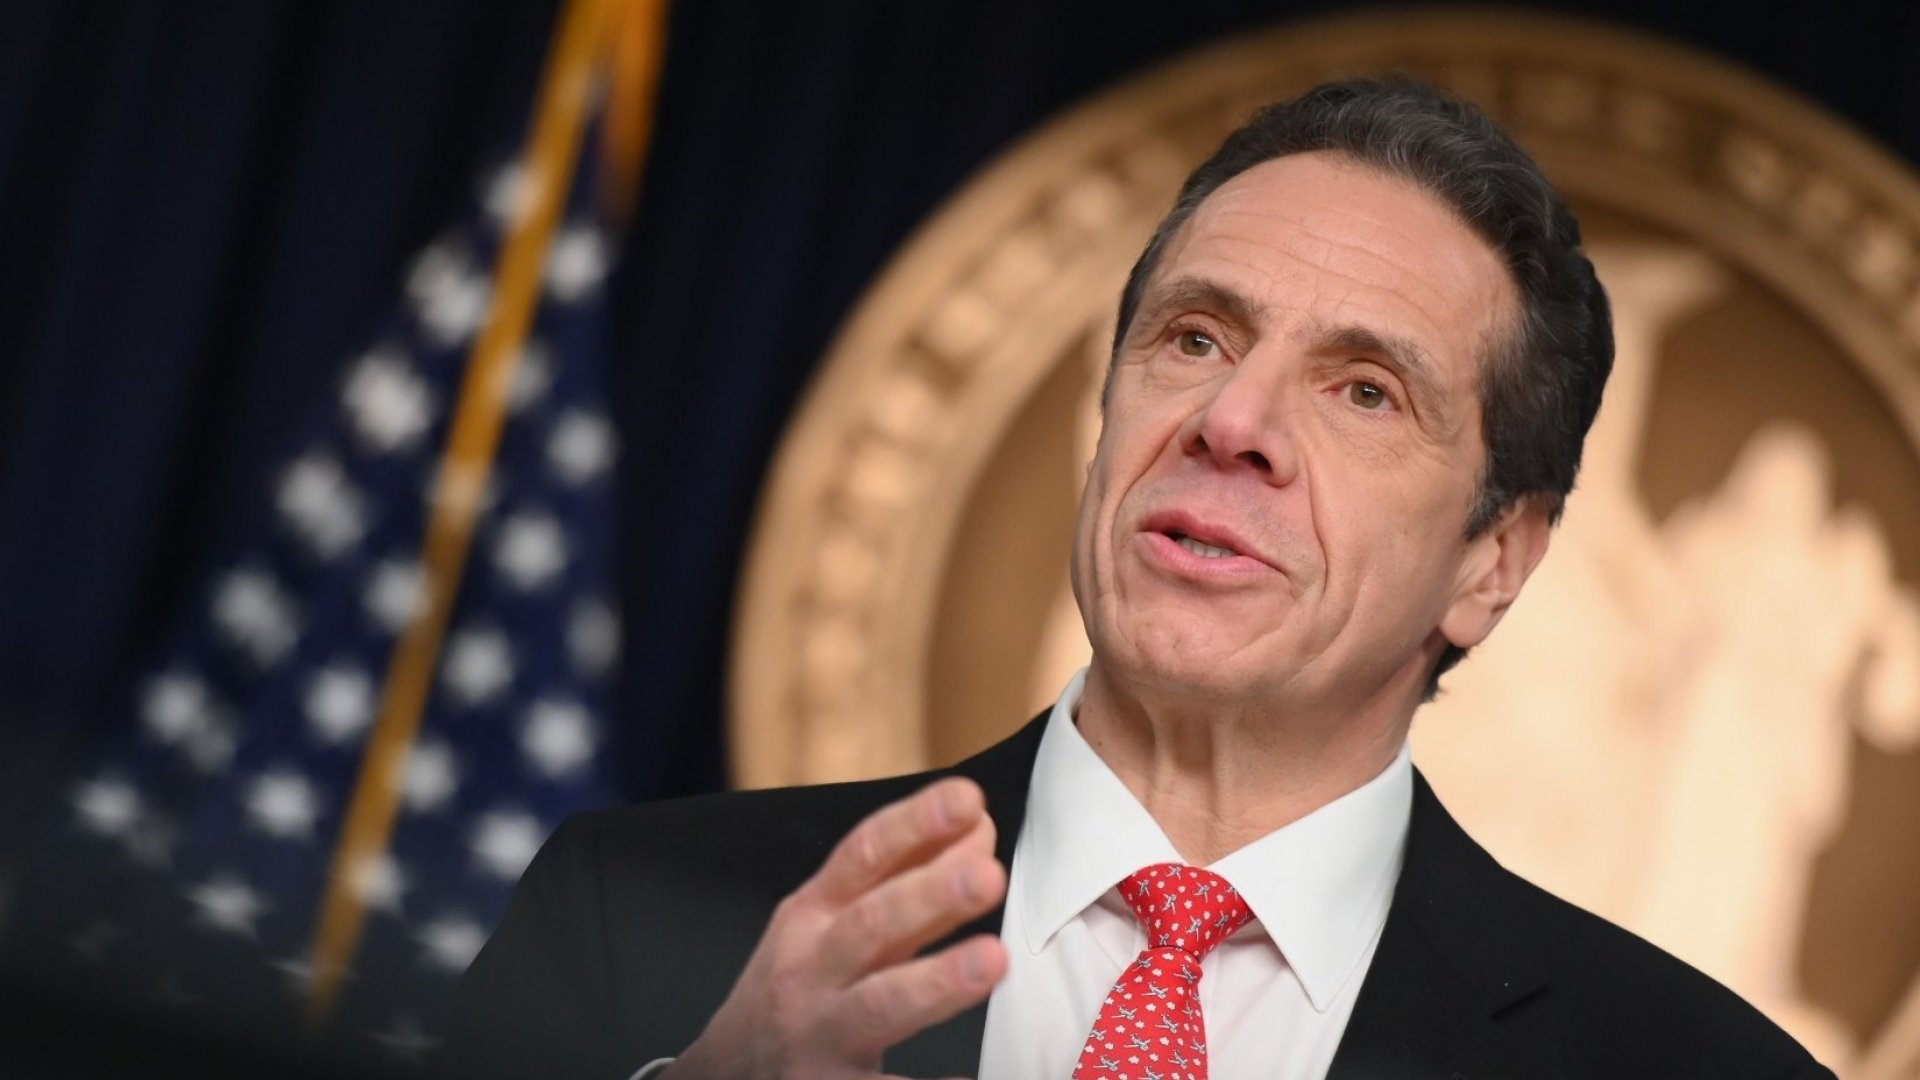 """The two reportedly questioned him for 11 hours, during which he publicly cuomo has said the investigation may be politically motivated, and told reporters monday after his questioning that people will be 'shocked'. Andrew Cuomo: """"We Will Legalize Marijuana"""" in New York ..."""